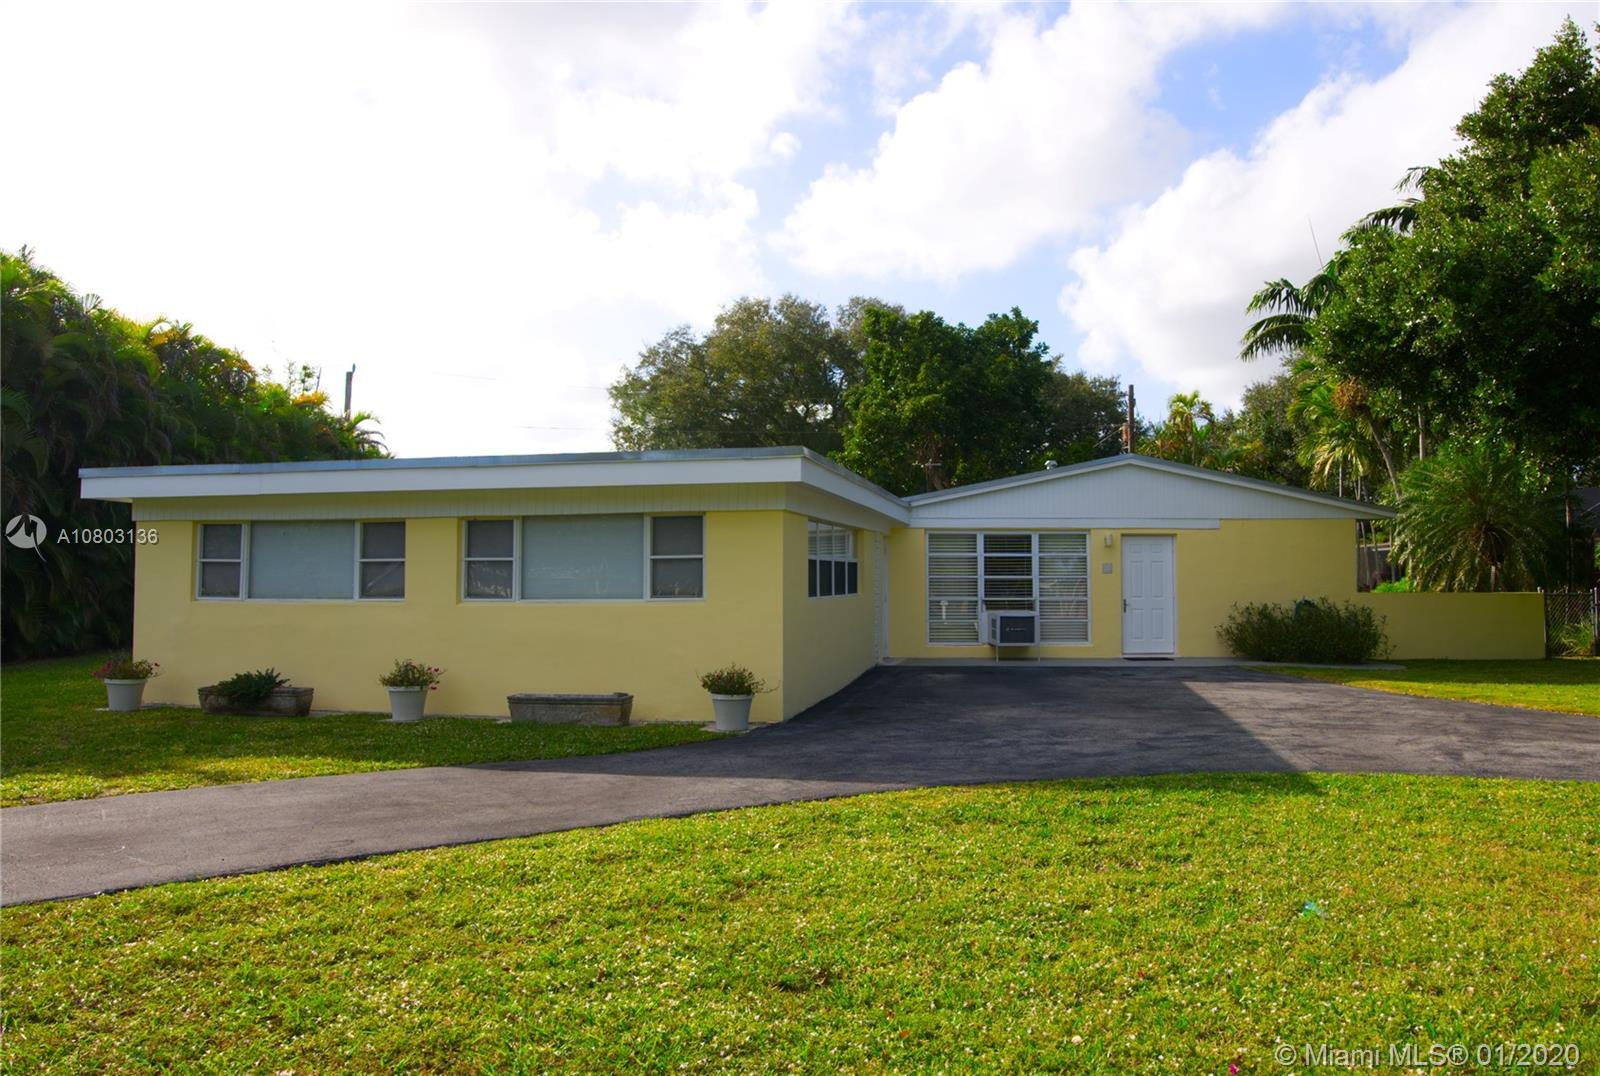 PINECREST BEAUTIFUL CBS BLOCK CONCRETE POOL HOME, 3 BEDROOMS and 2 BATHS with a LARGE SEPARATE ENTRA